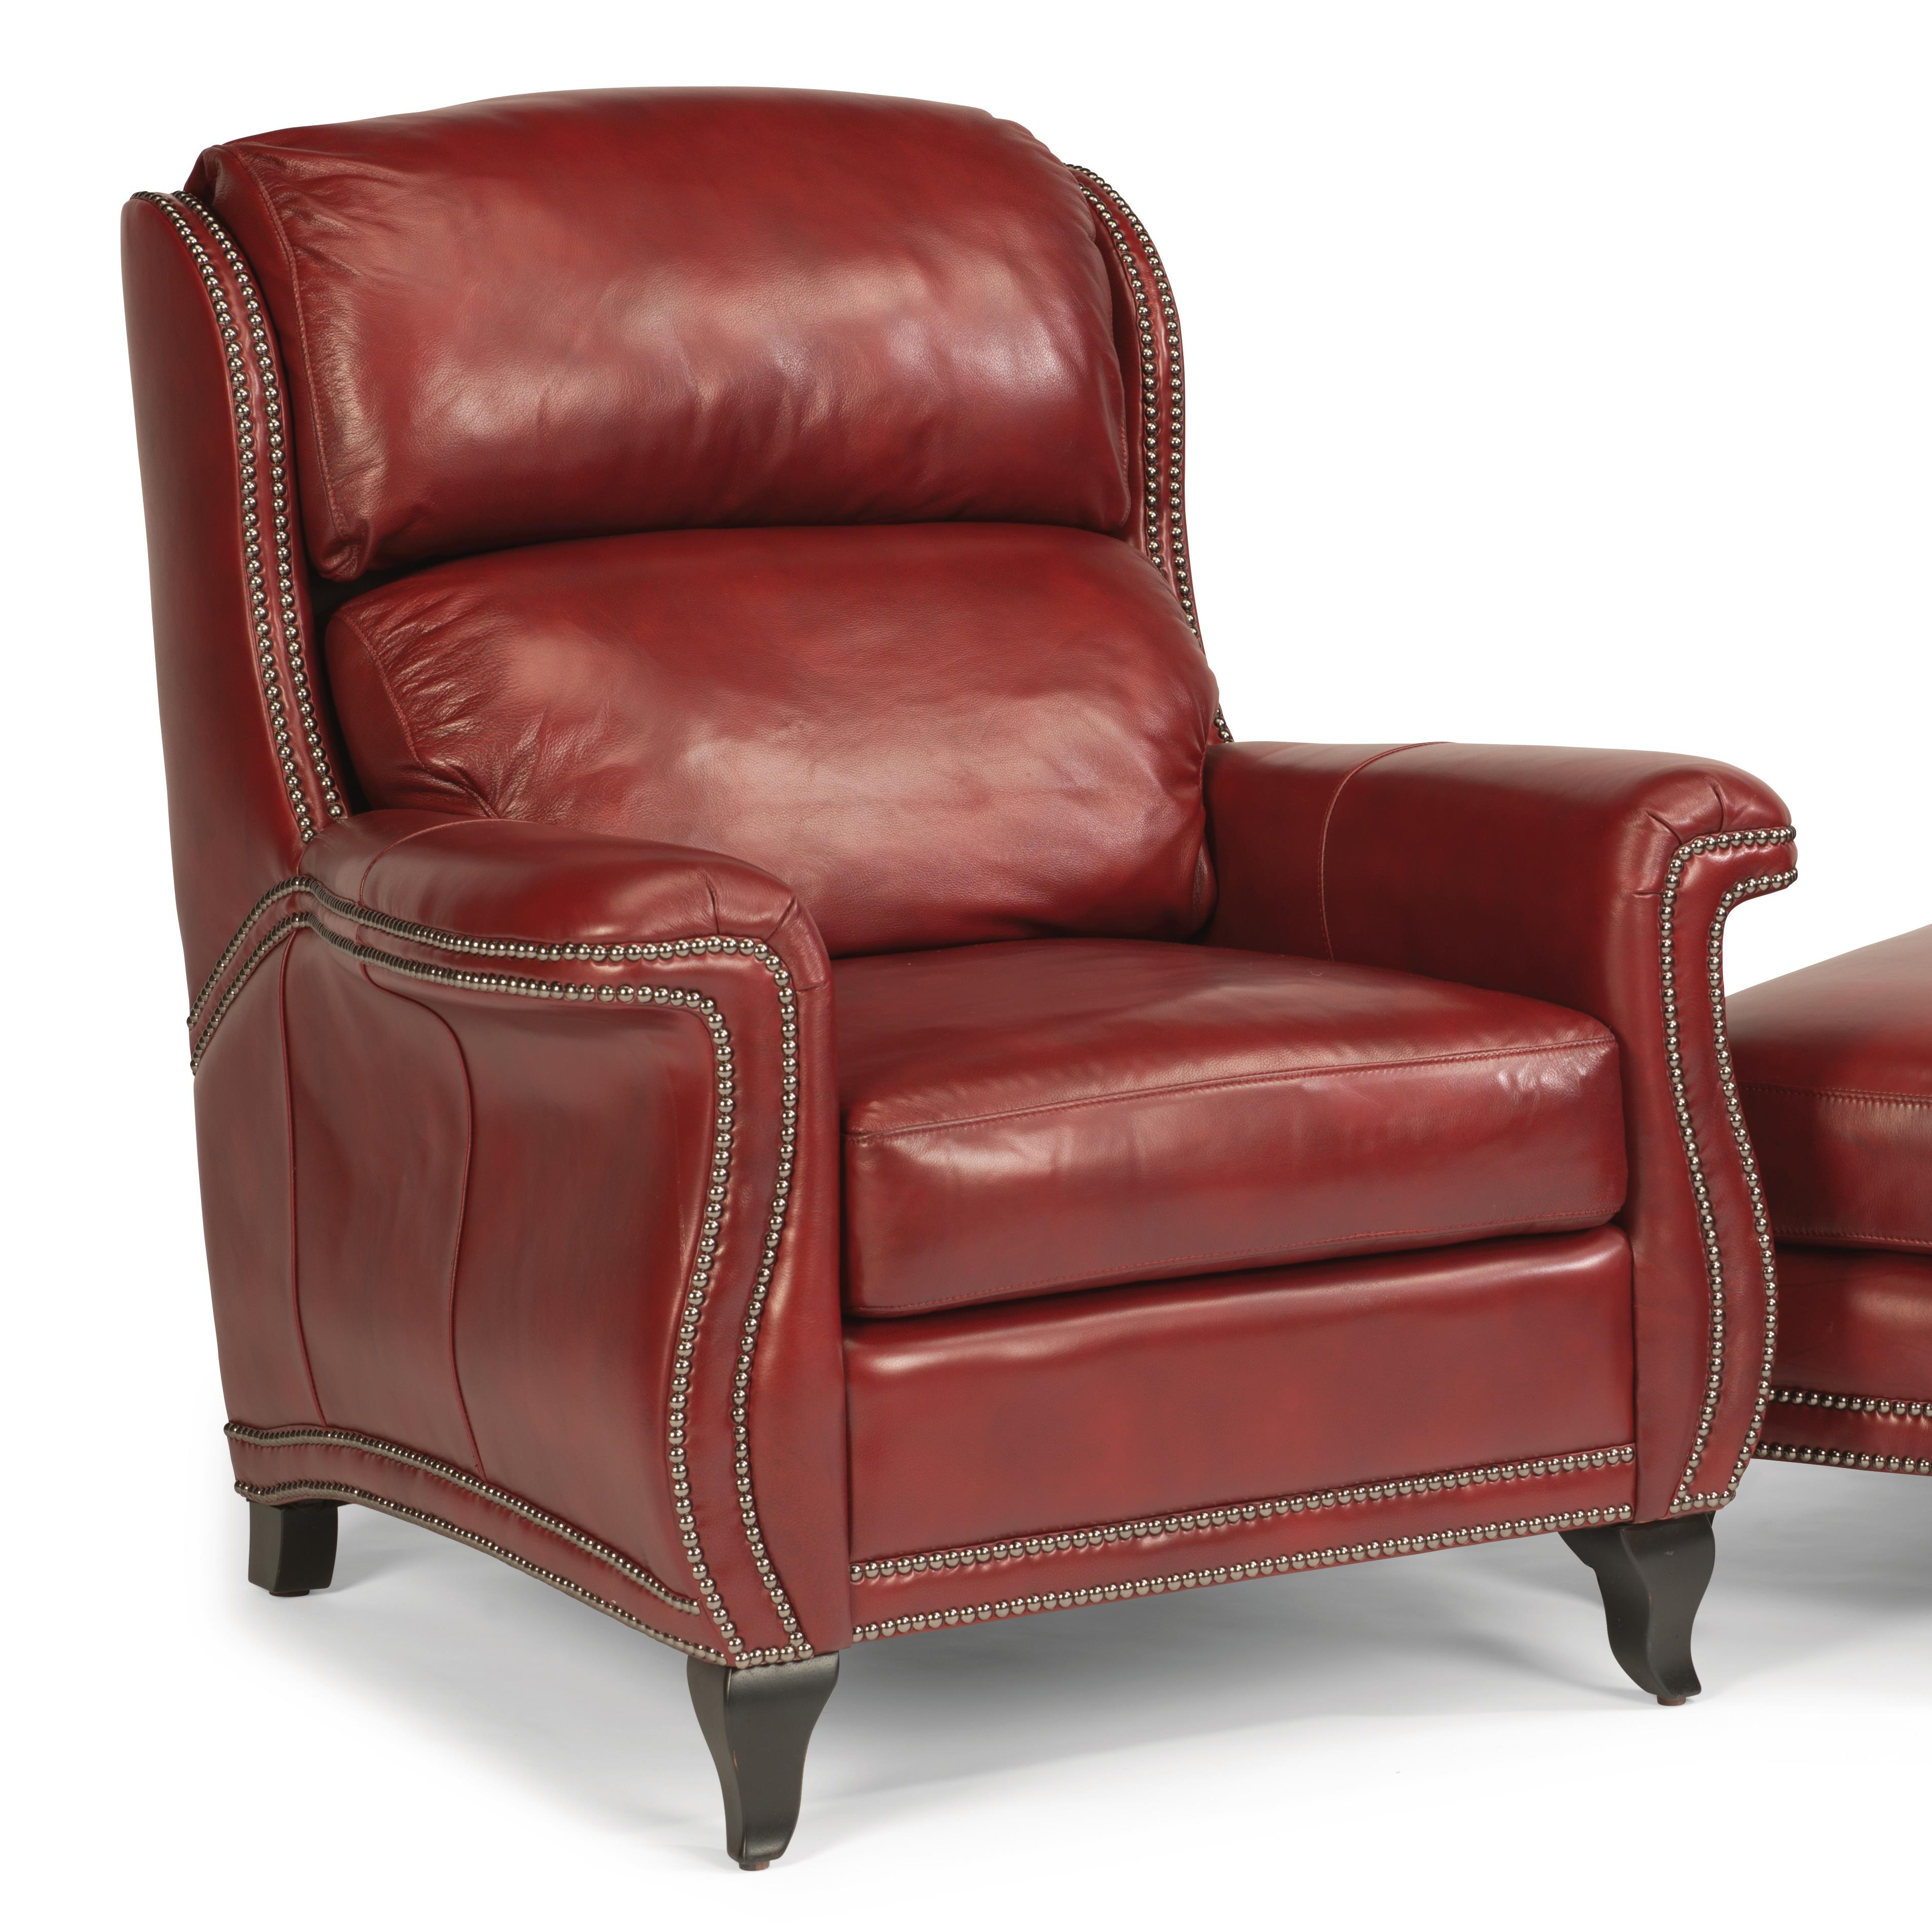 Flexsteel Latitudes-Sting Ray Chair - Item Number: 1256-10-LSP-55